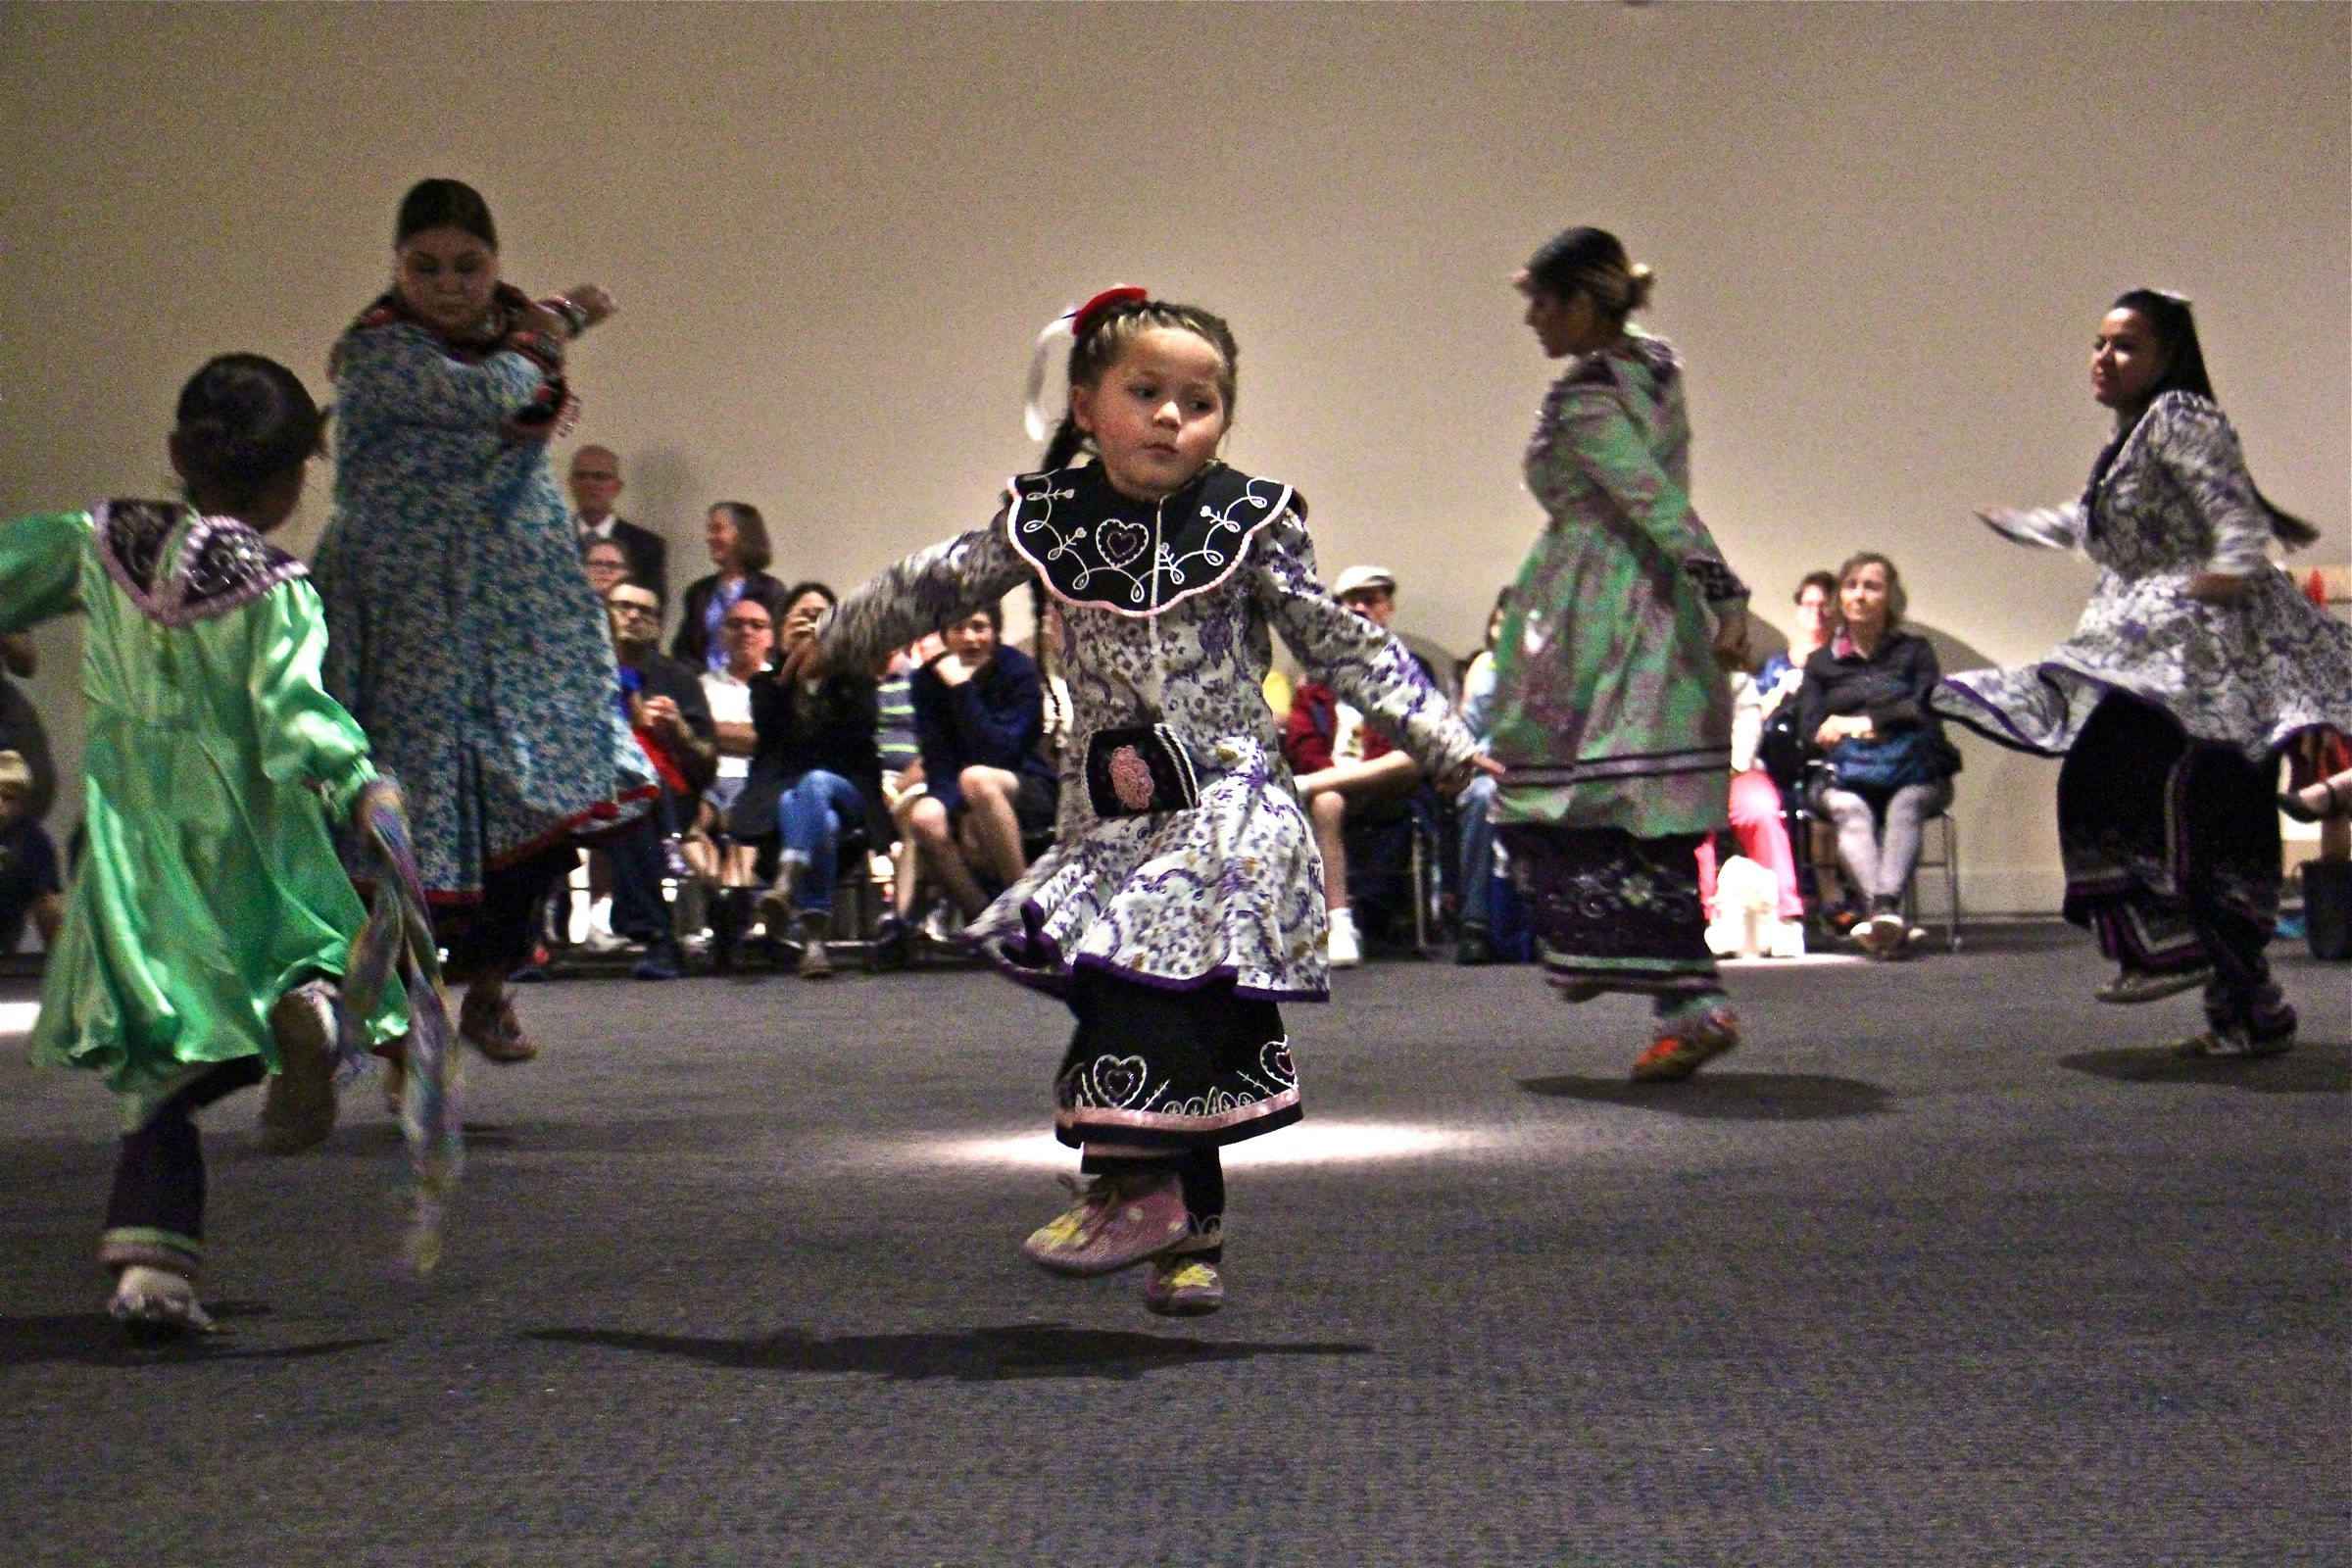 Reina Alice, 5, of the Oneida Nation performs with the Longhouse Singers and Dancers at the Museum of the American Revolution.